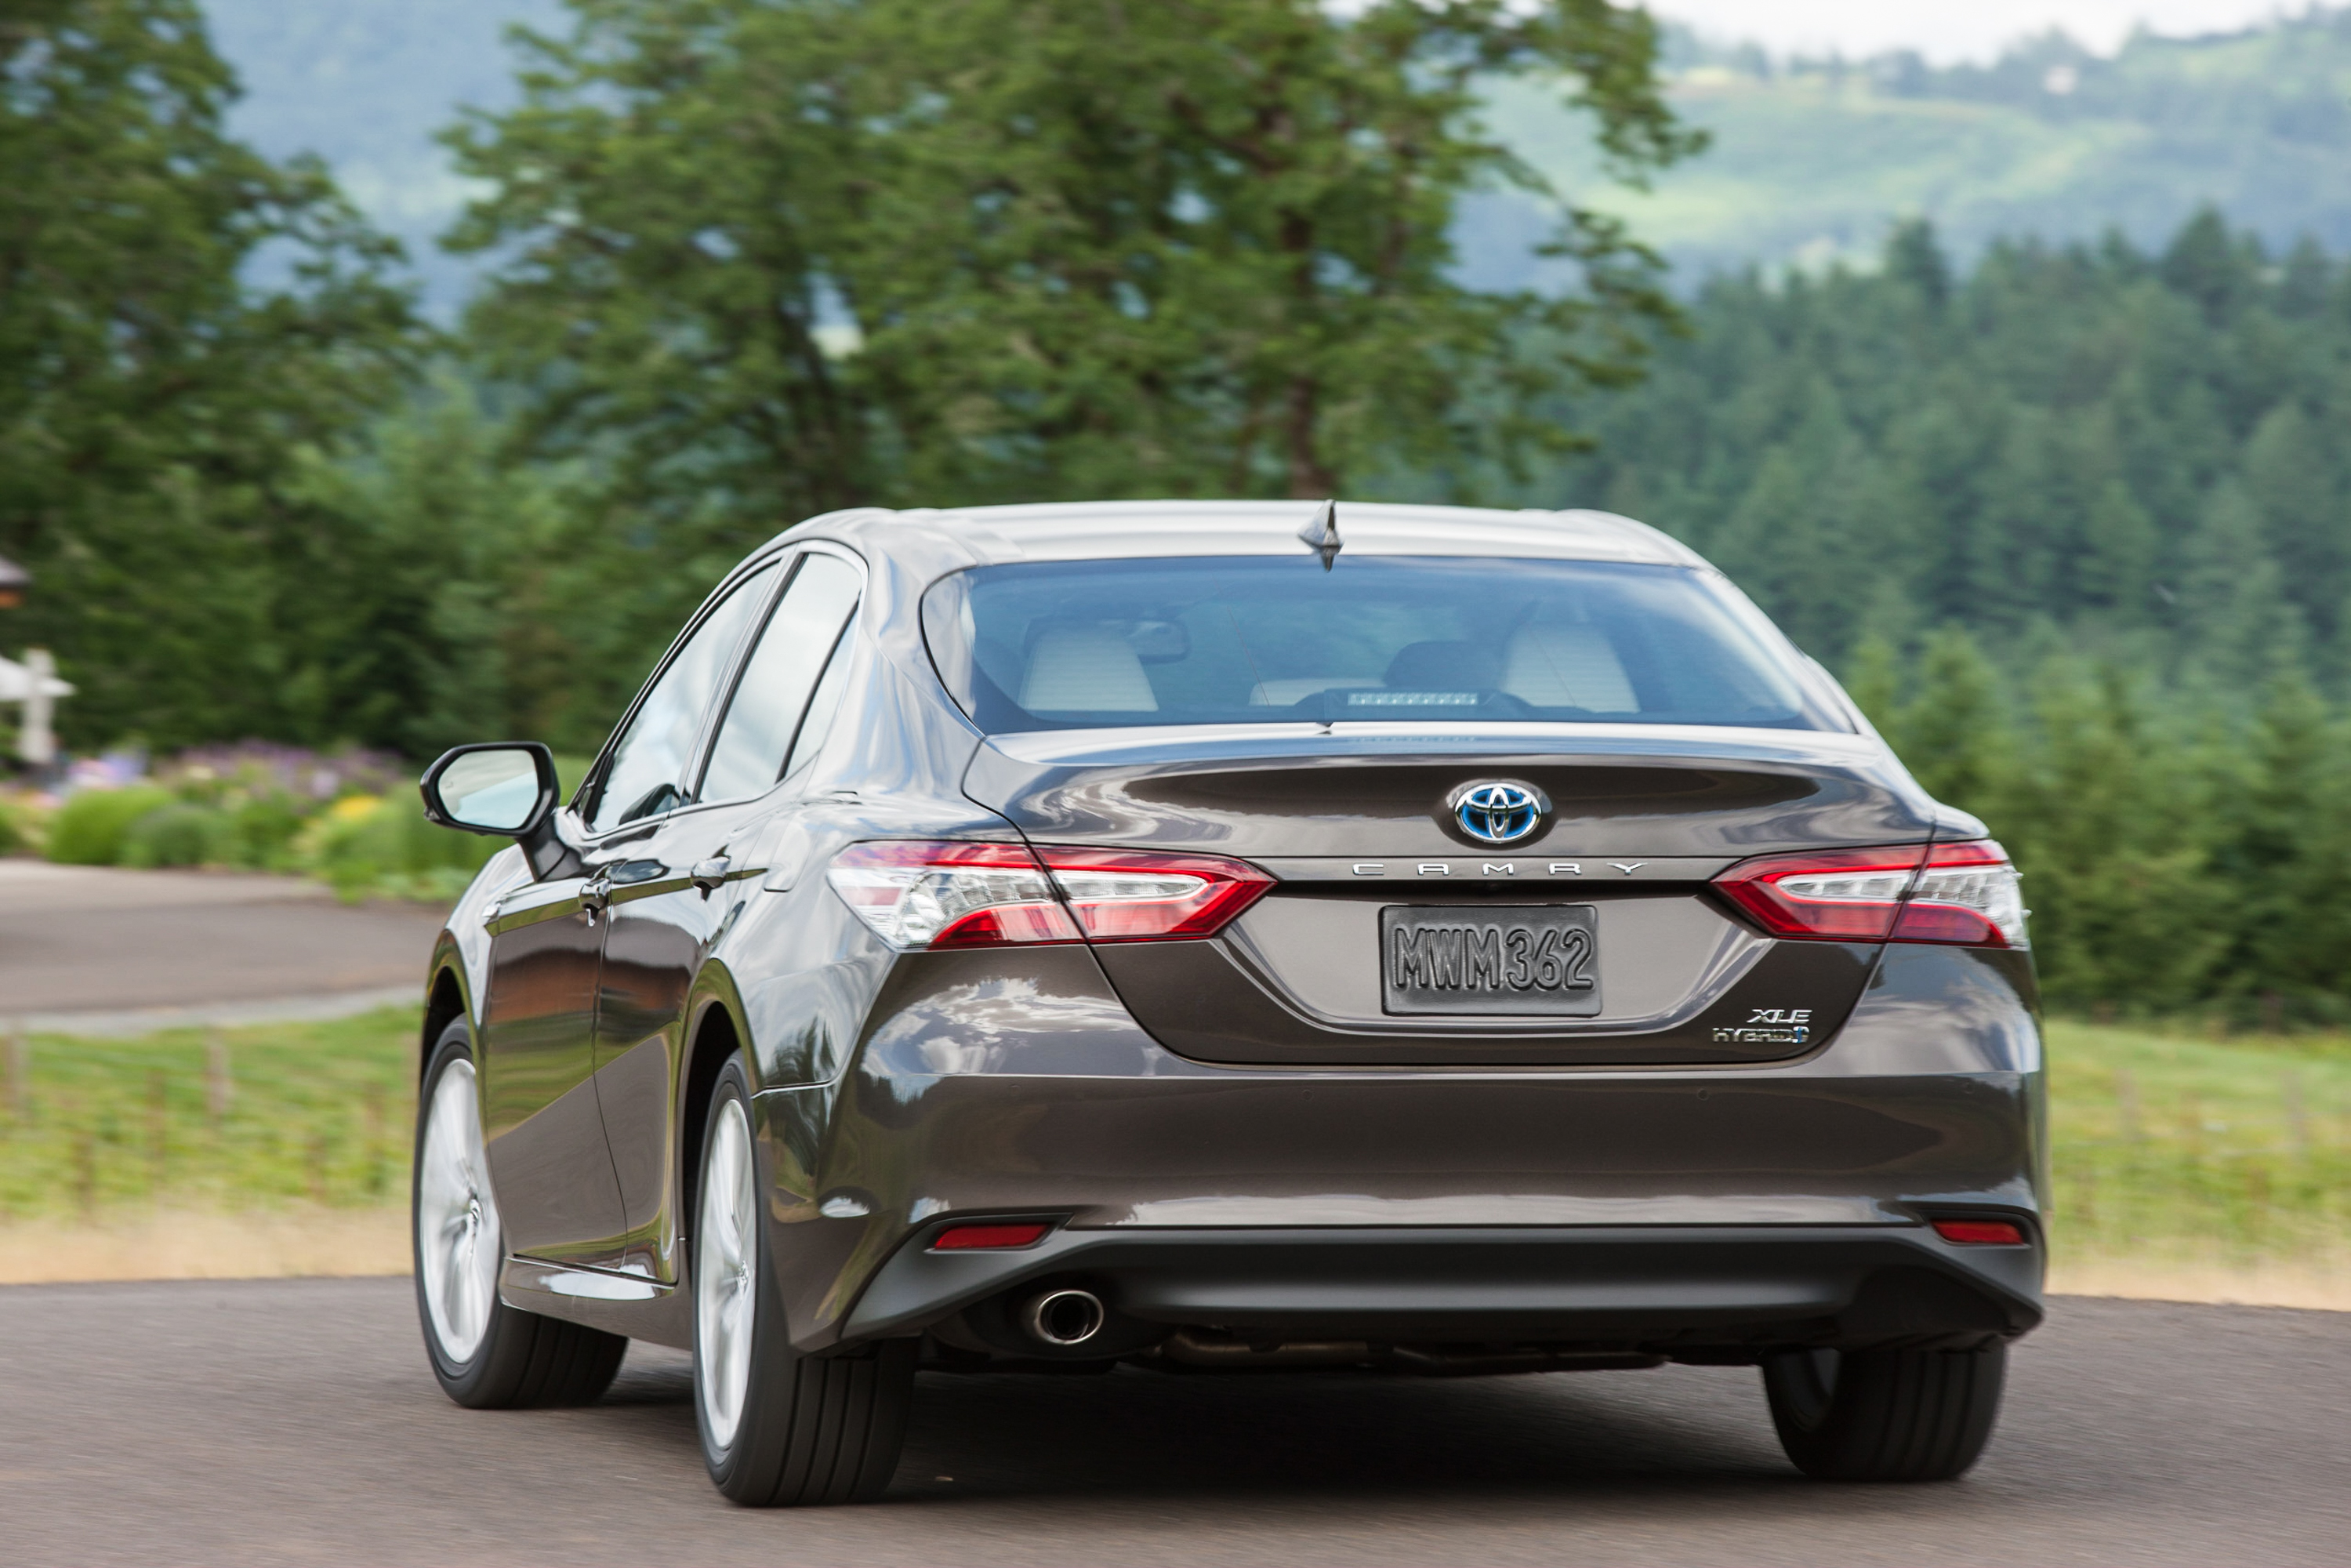 2018 Toyota Camry XLE Hybrid Rear View - The Green Car Guy